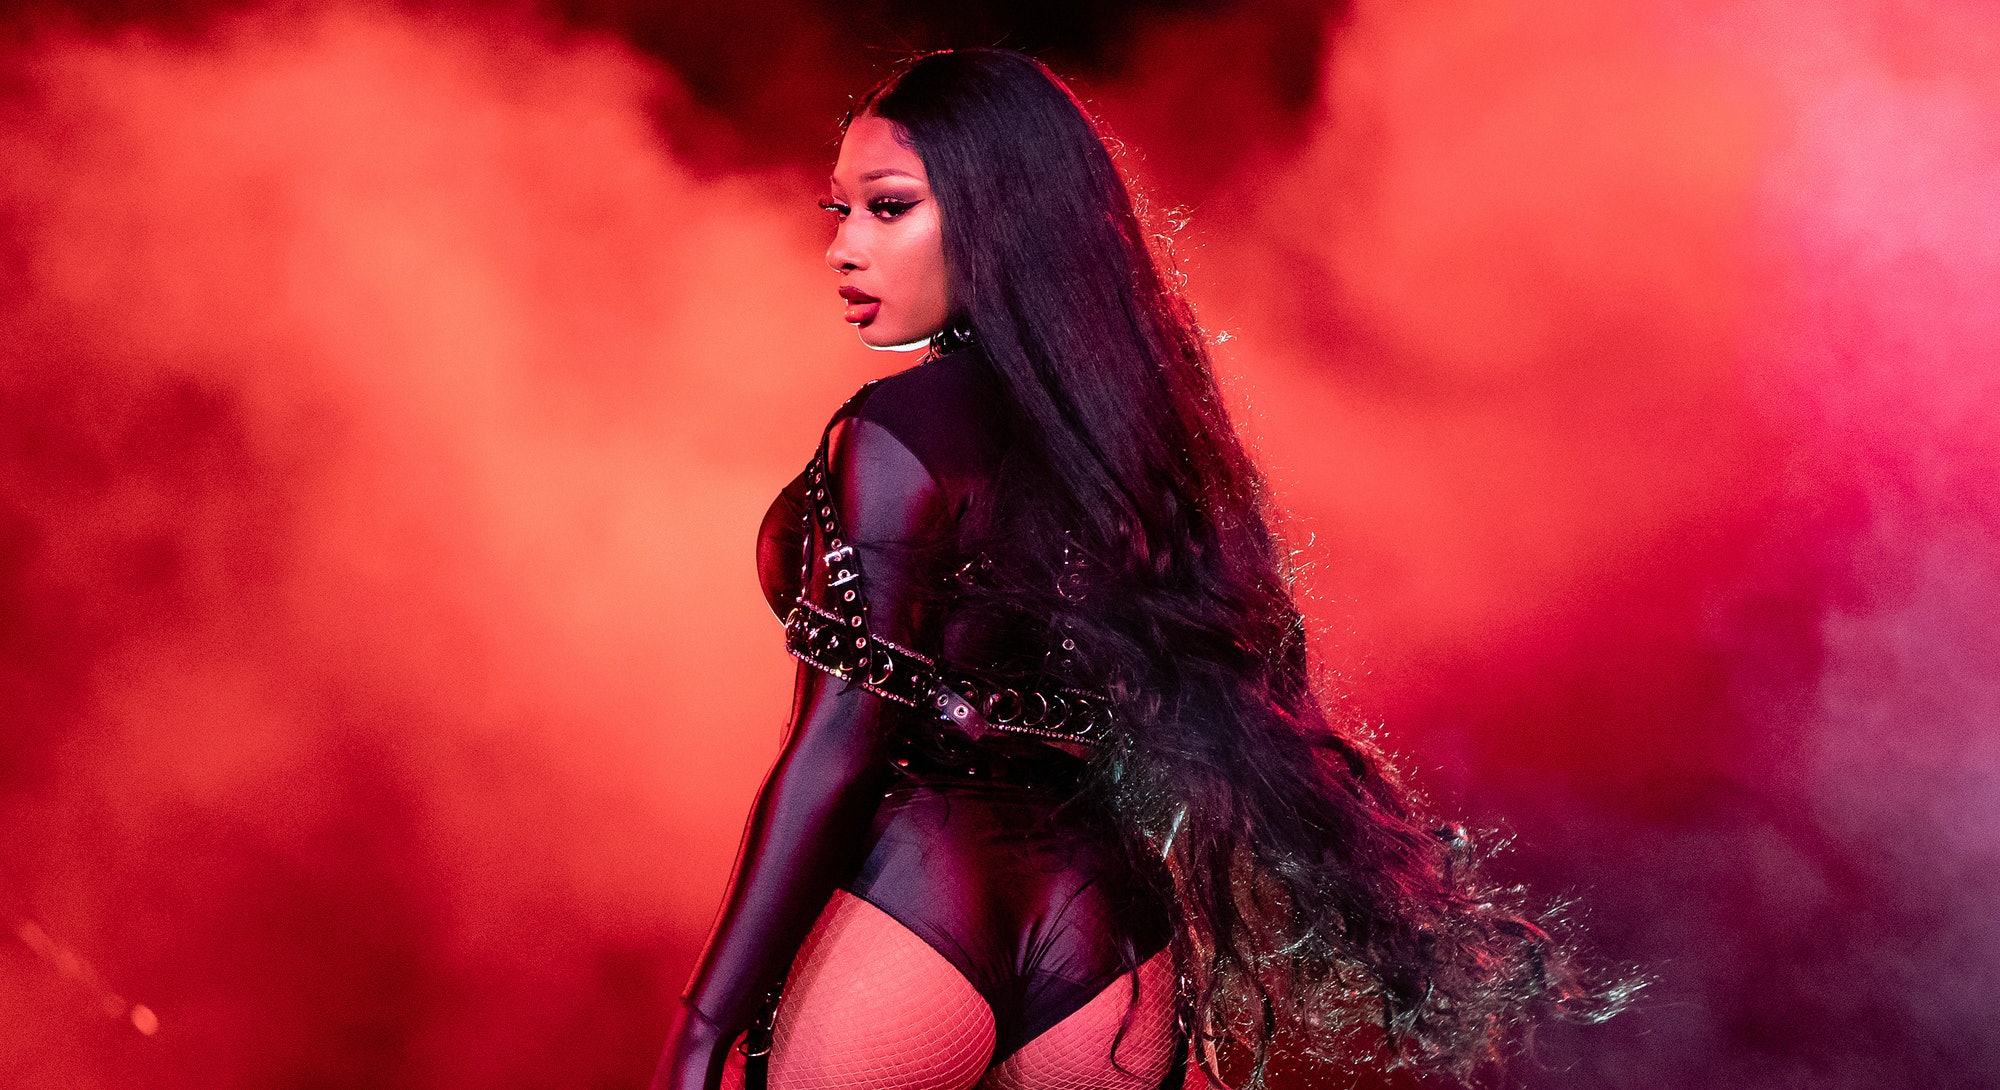 Rapper Megan Thee Stallion at a concert in front of red lights and smoke.